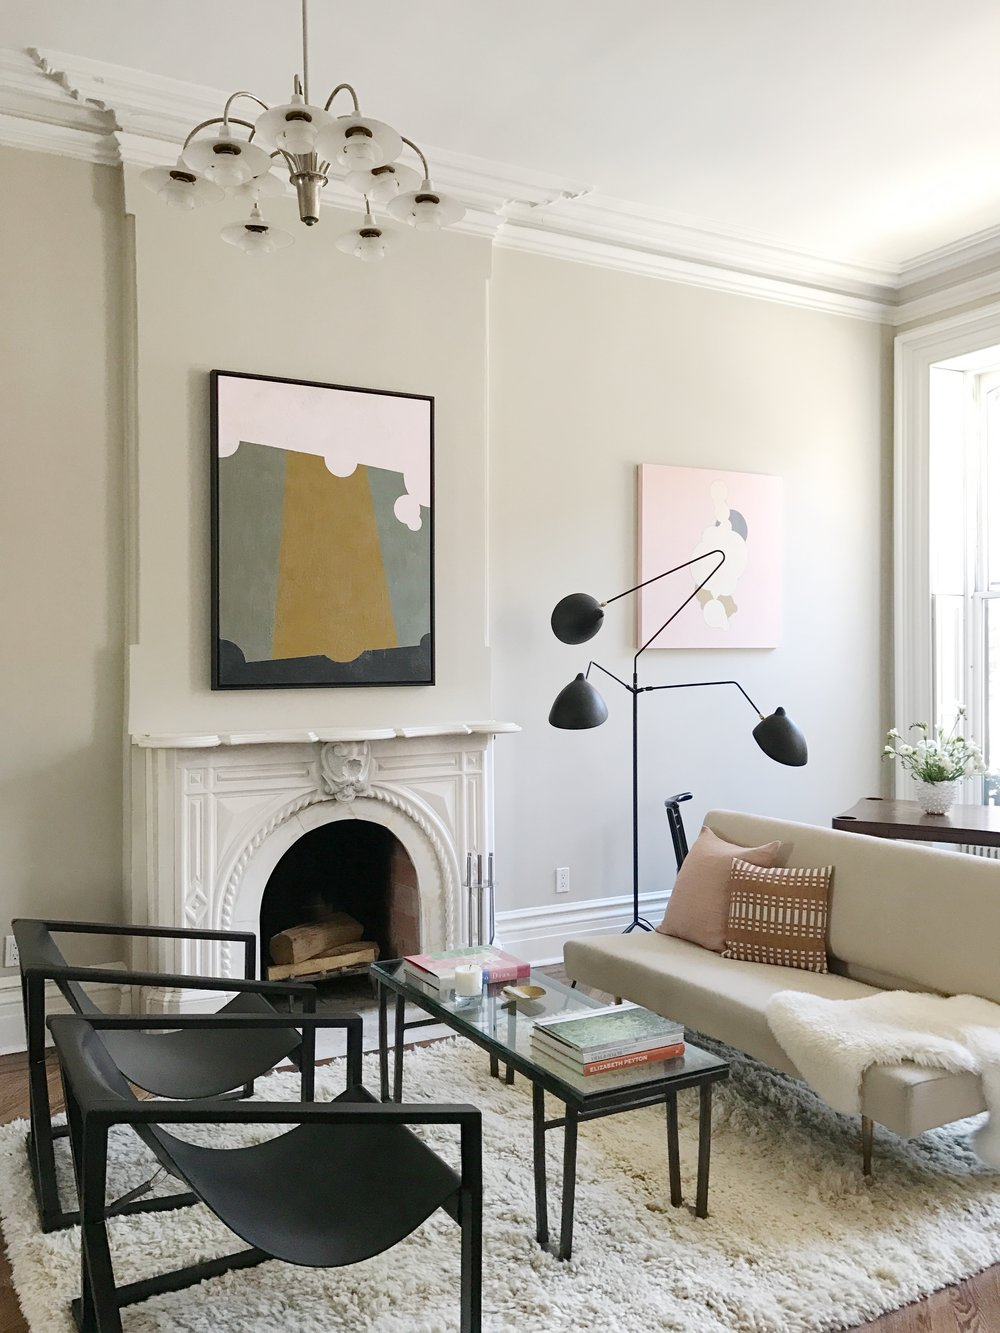 Hovey Design Staging - 167 6th Ave - Parlor Floor Seating.JPG